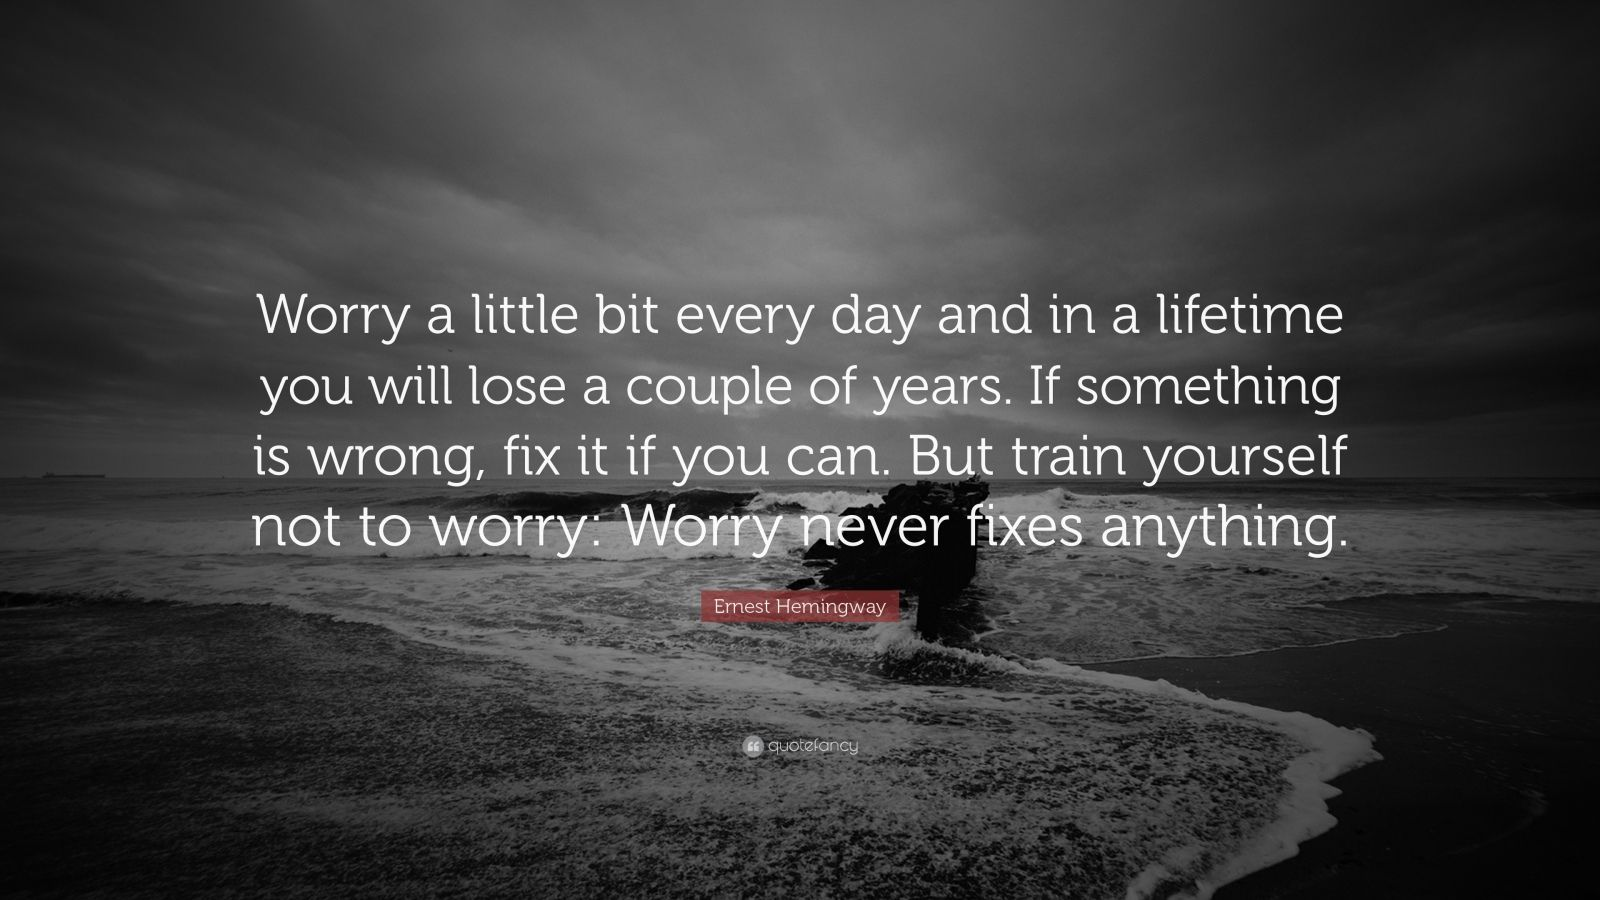 """Ernest Hemingway Quote: """"Worry a little bit every day and in a lifetime you will lose a couple of years.  If something is wrong, fix it if you can. But train yourself not to worry:  Worry never fixes anything.                  """""""